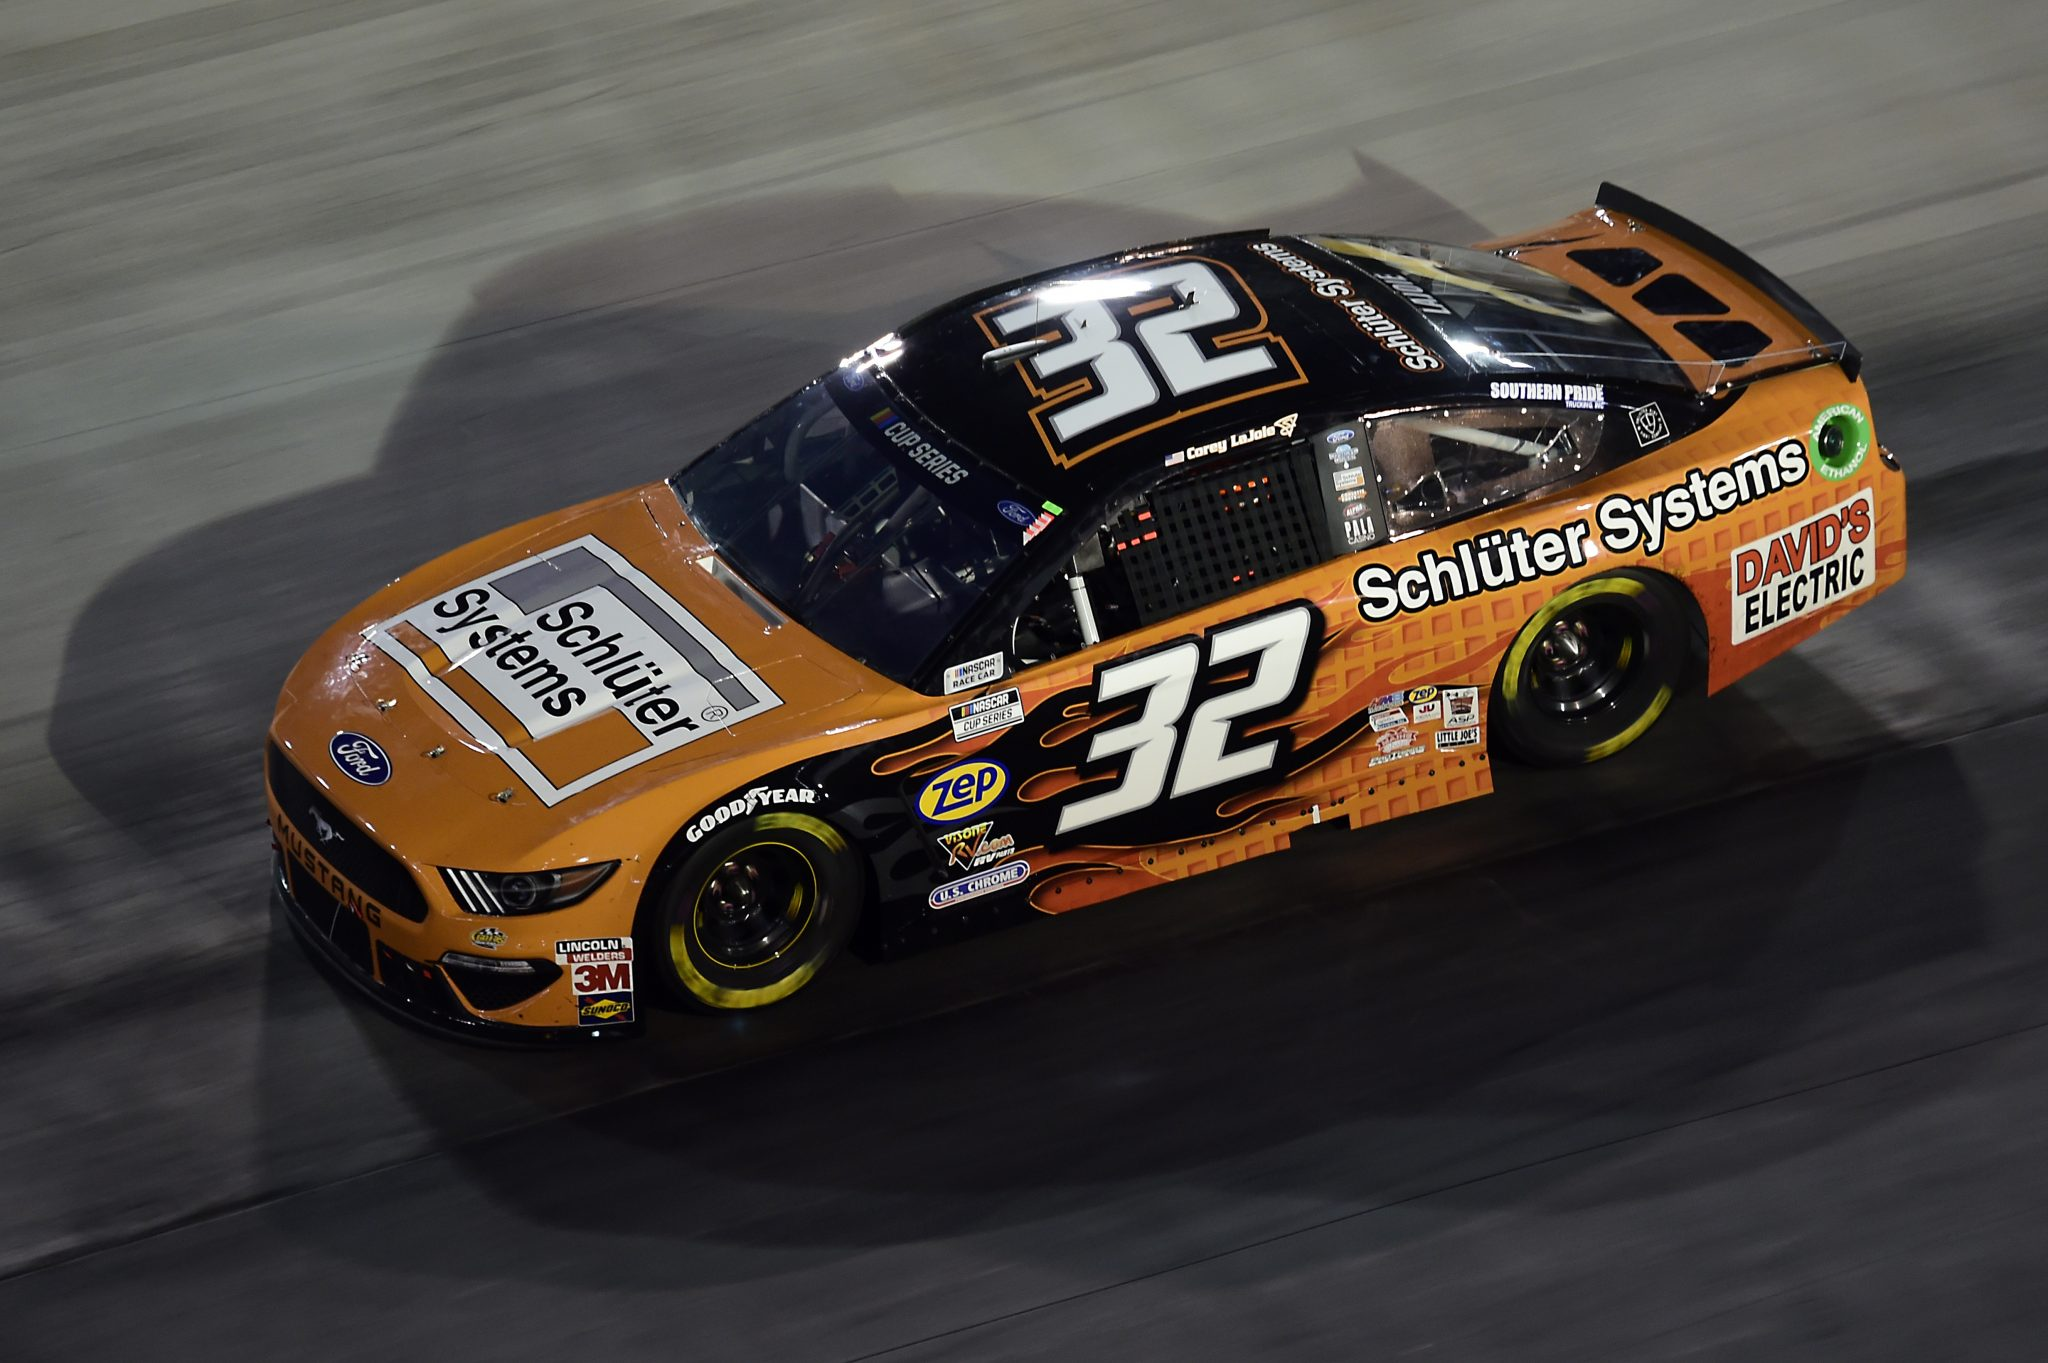 BRISTOL, TENNESSEE - SEPTEMBER 19: Corey LaJoie, driver of the #32 Schluter Systems Ford, drives during the NASCAR Cup Series Bass Pro Shops Night Race at Bristol Motor Speedway on September 19, 2020 in Bristol, Tennessee. (Photo by Jared C. Tilton/Getty Images) | Getty Images